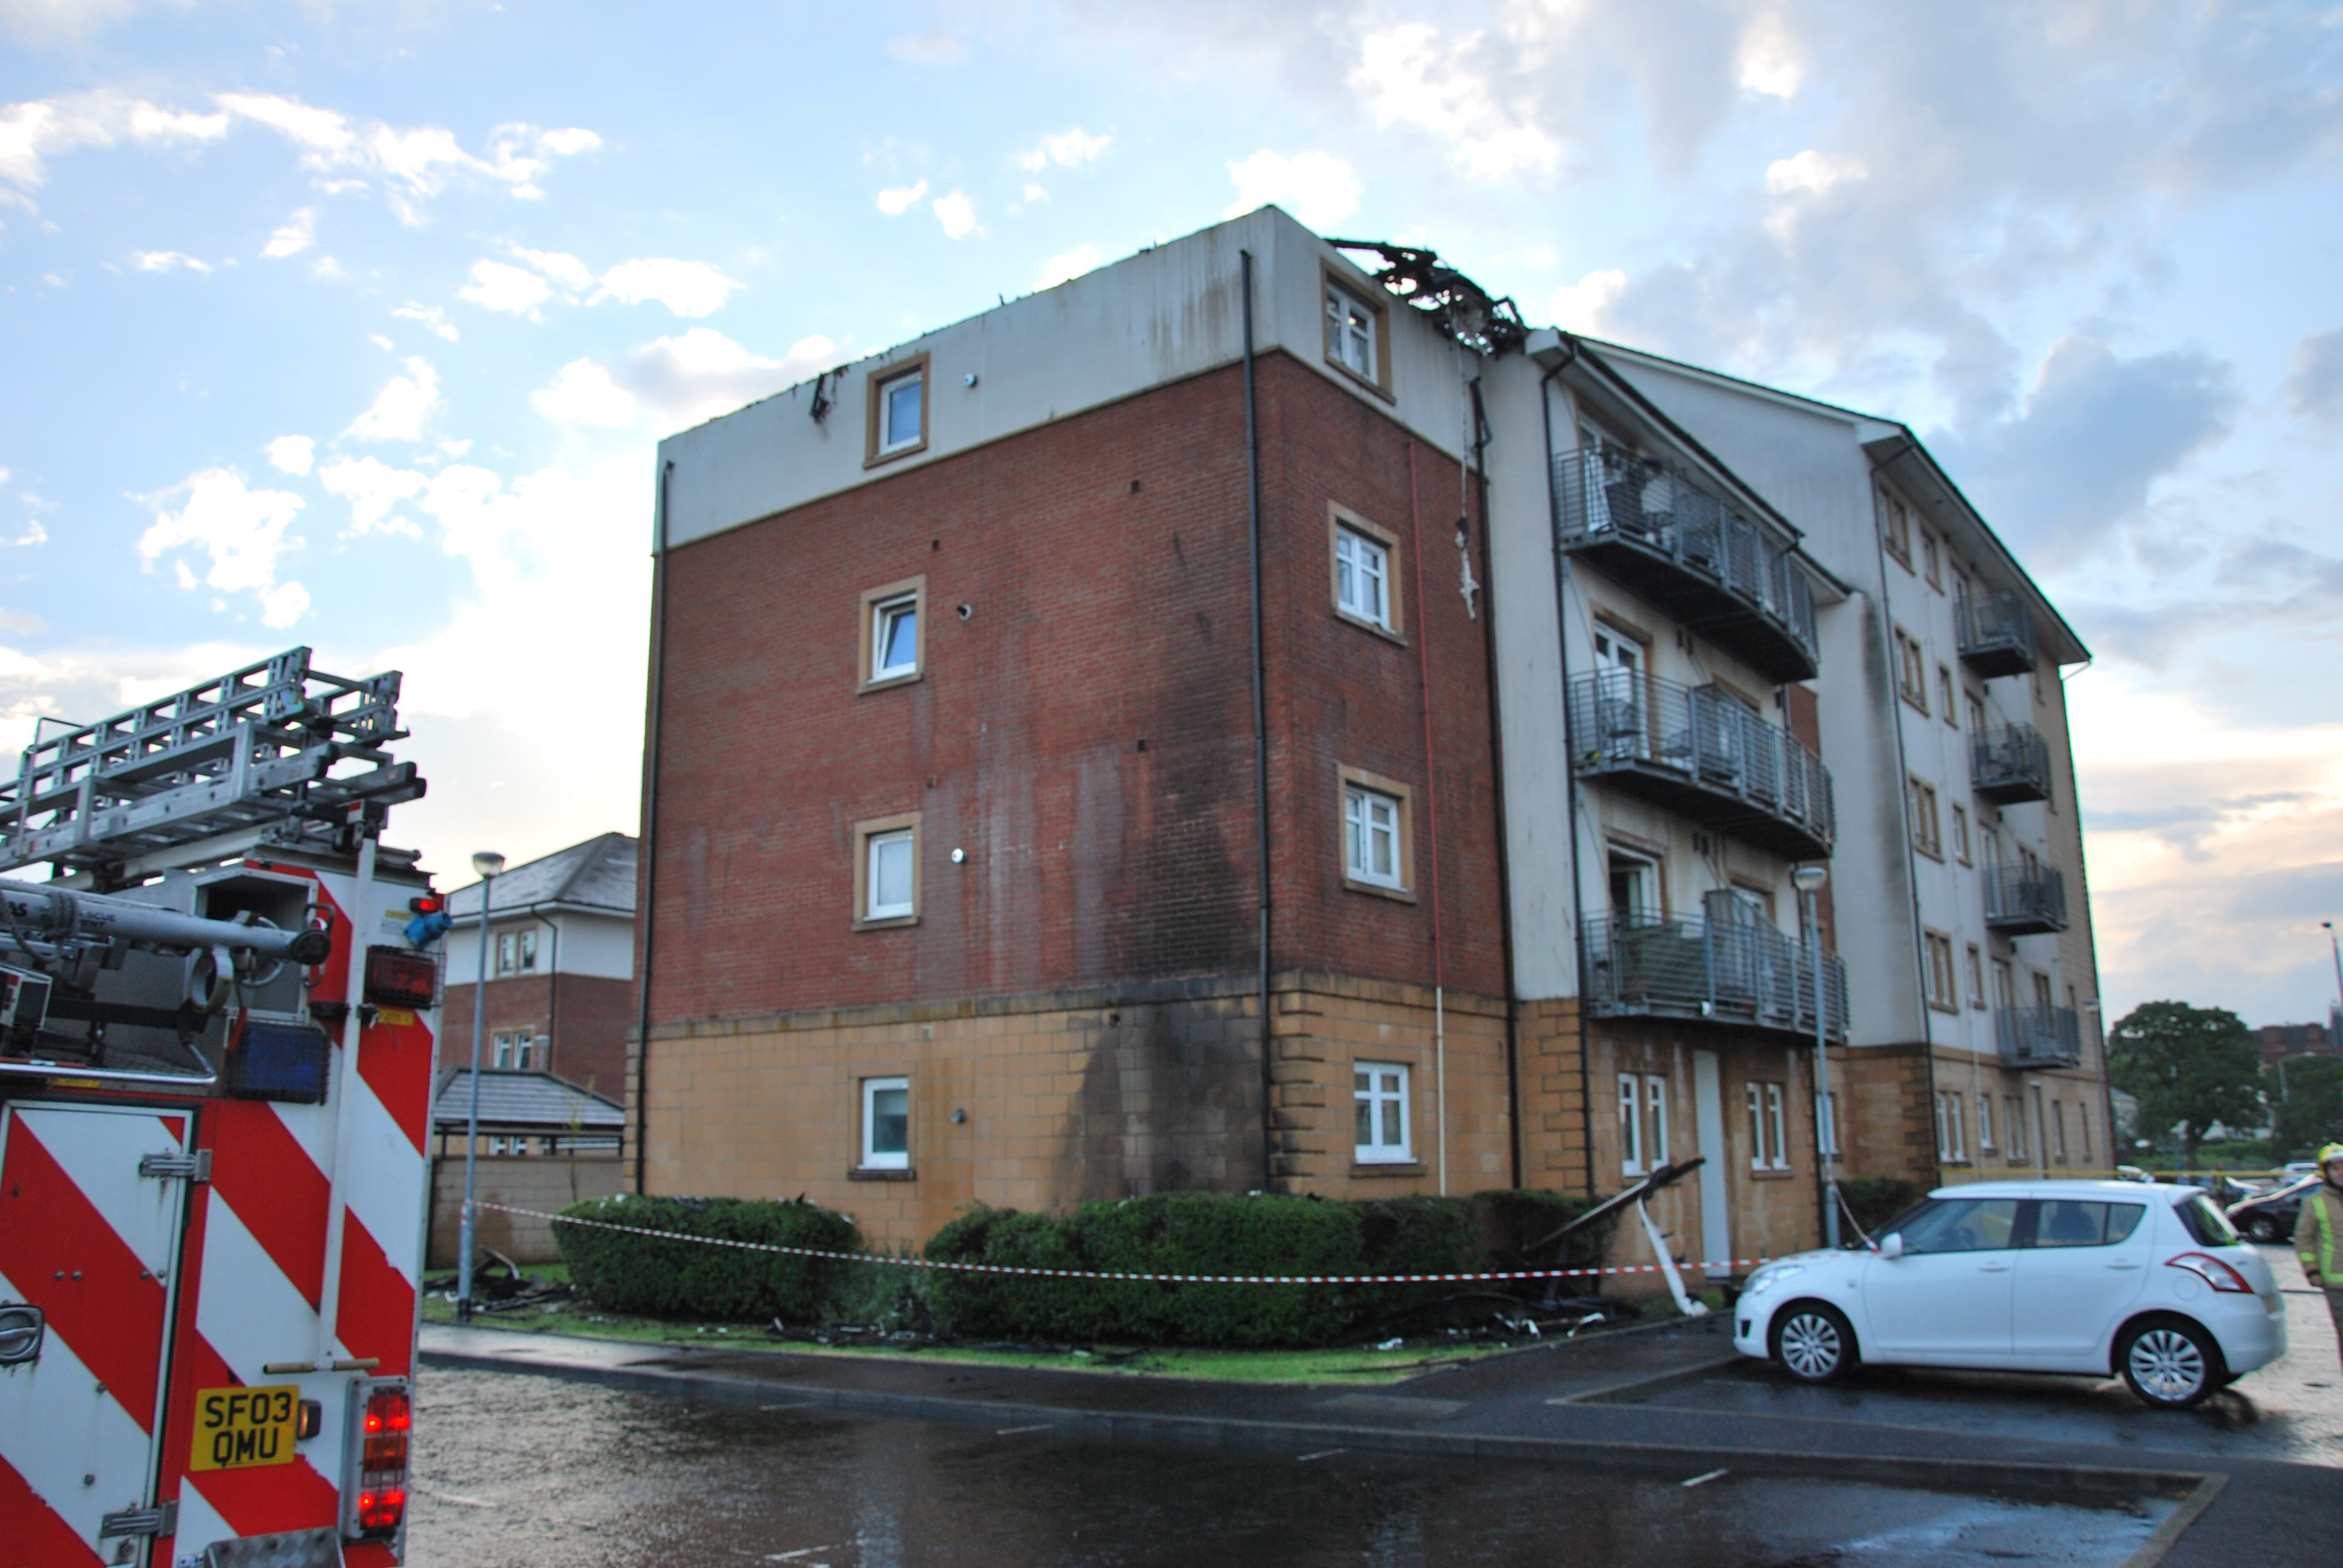 Crews tackle flat blaze following lightning strike in Greenock